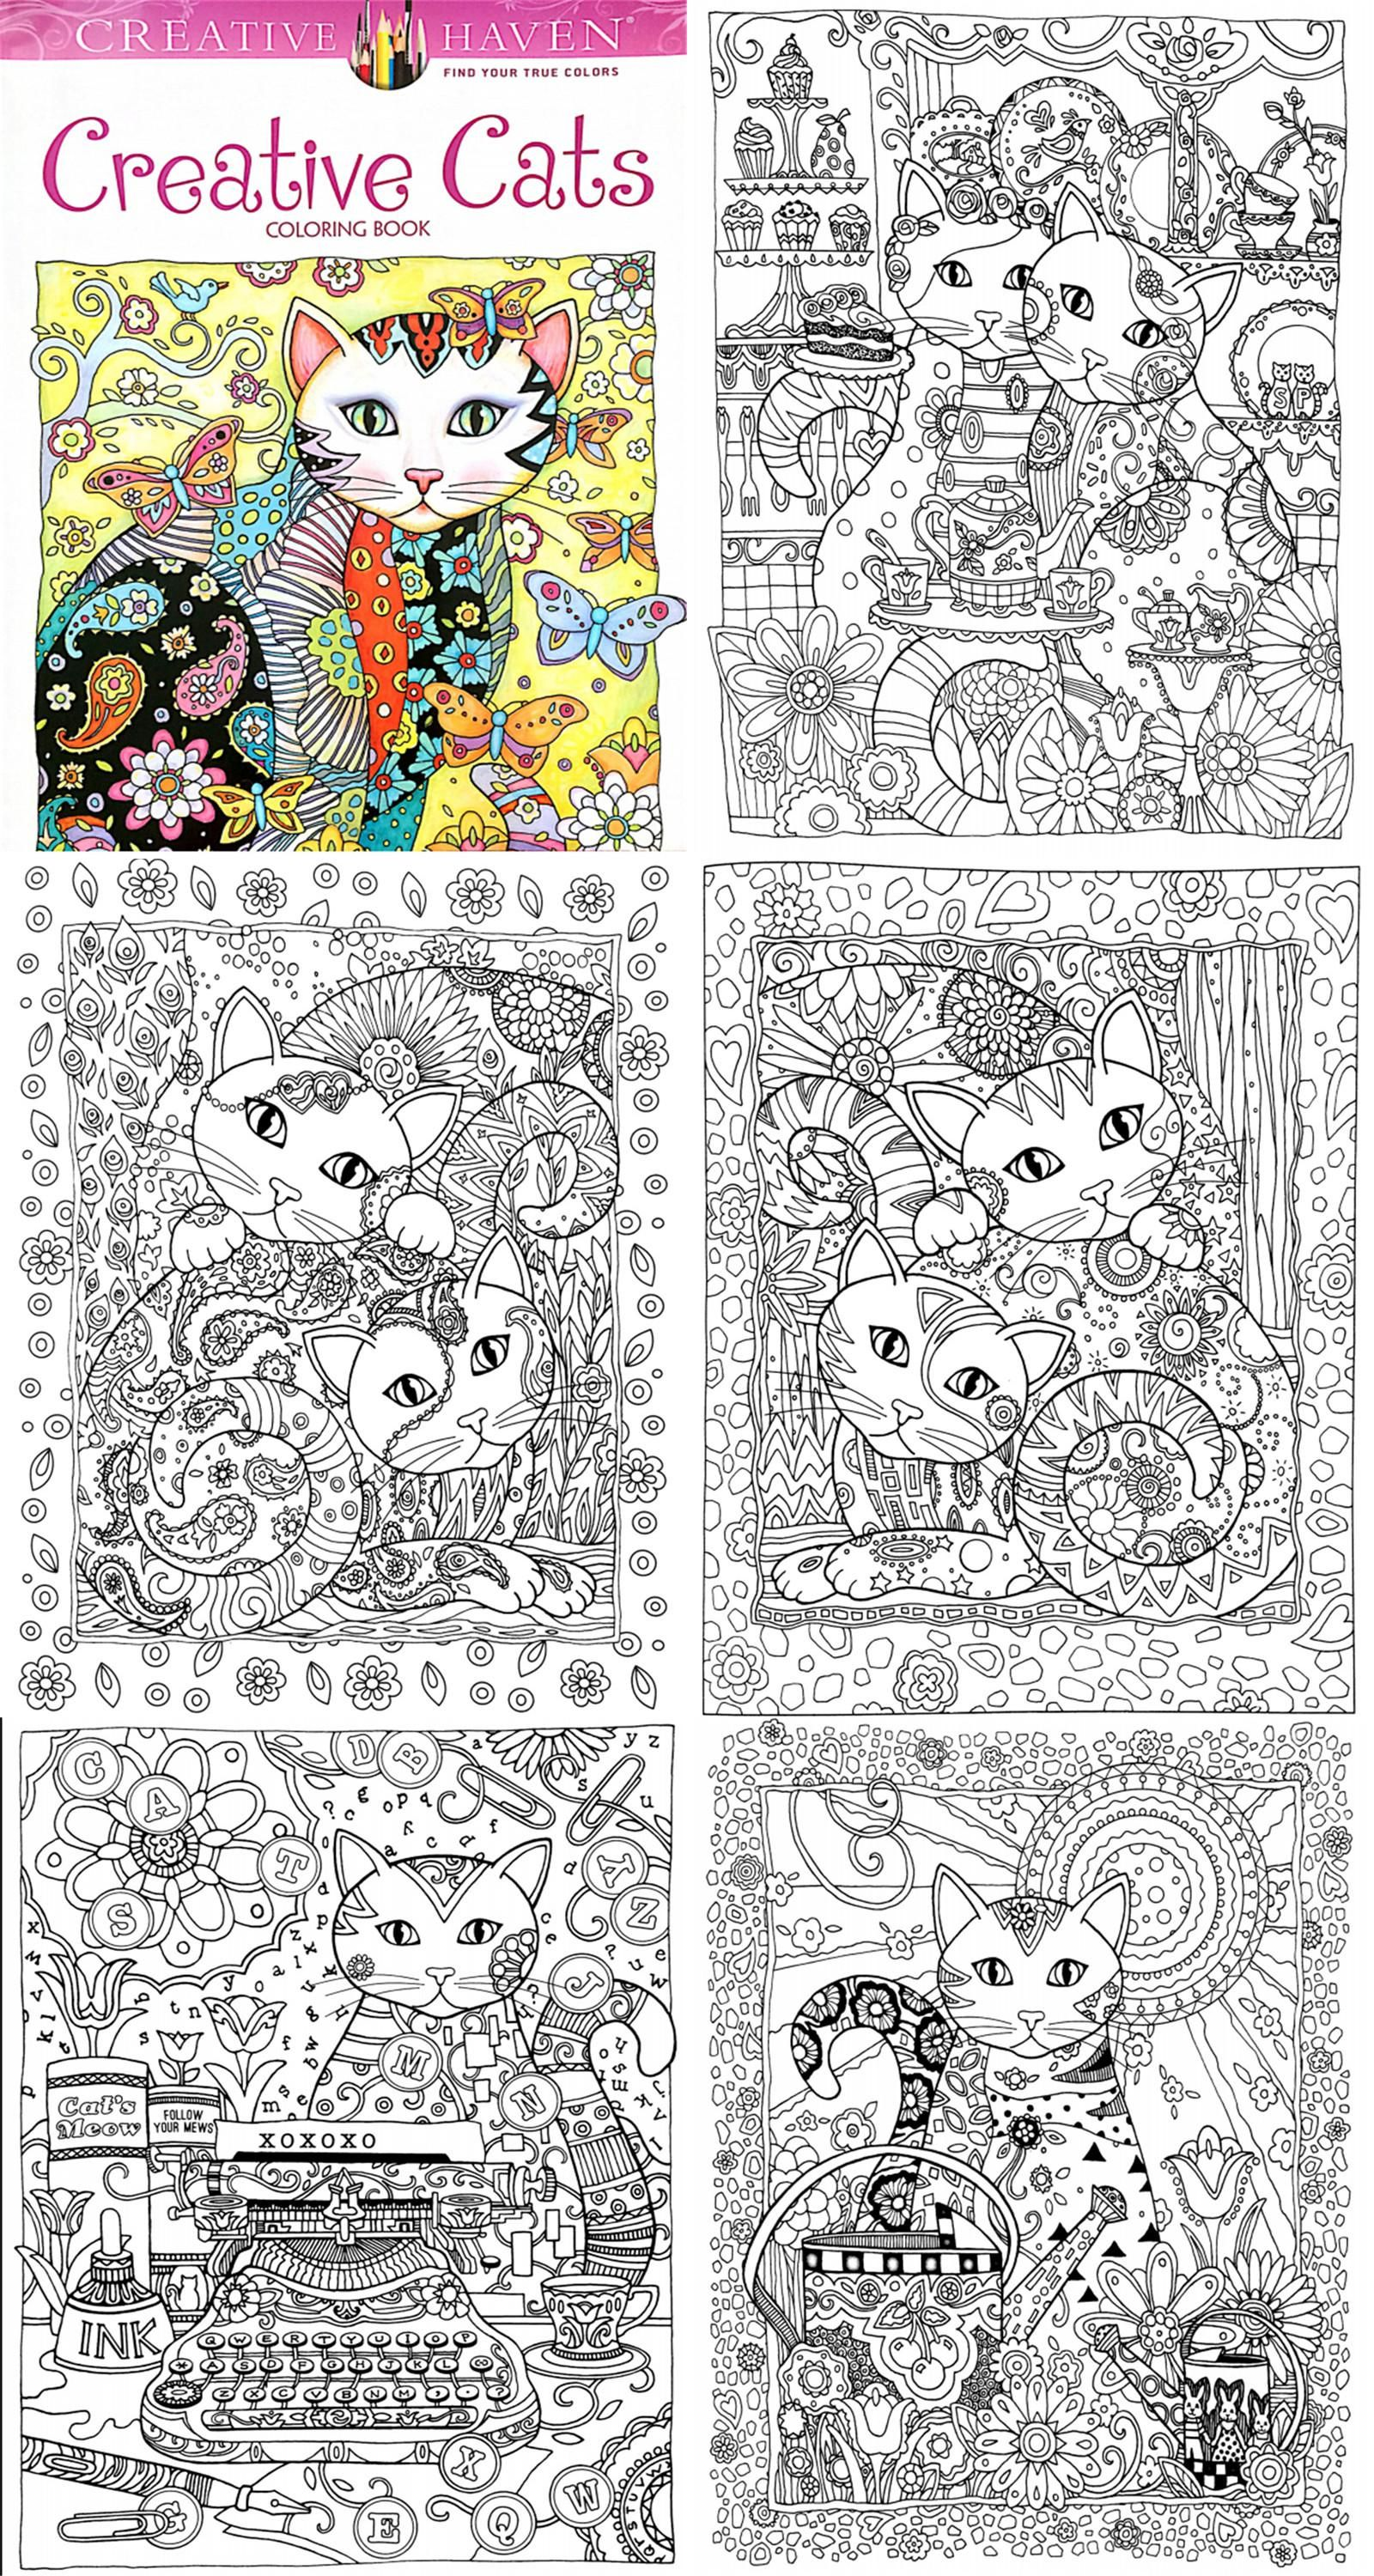 Stress relieving cats coloring -  Visit To Buy 24 Pages 18 5x21cm Colouring Book Creative Haven Creative Cats Coloring